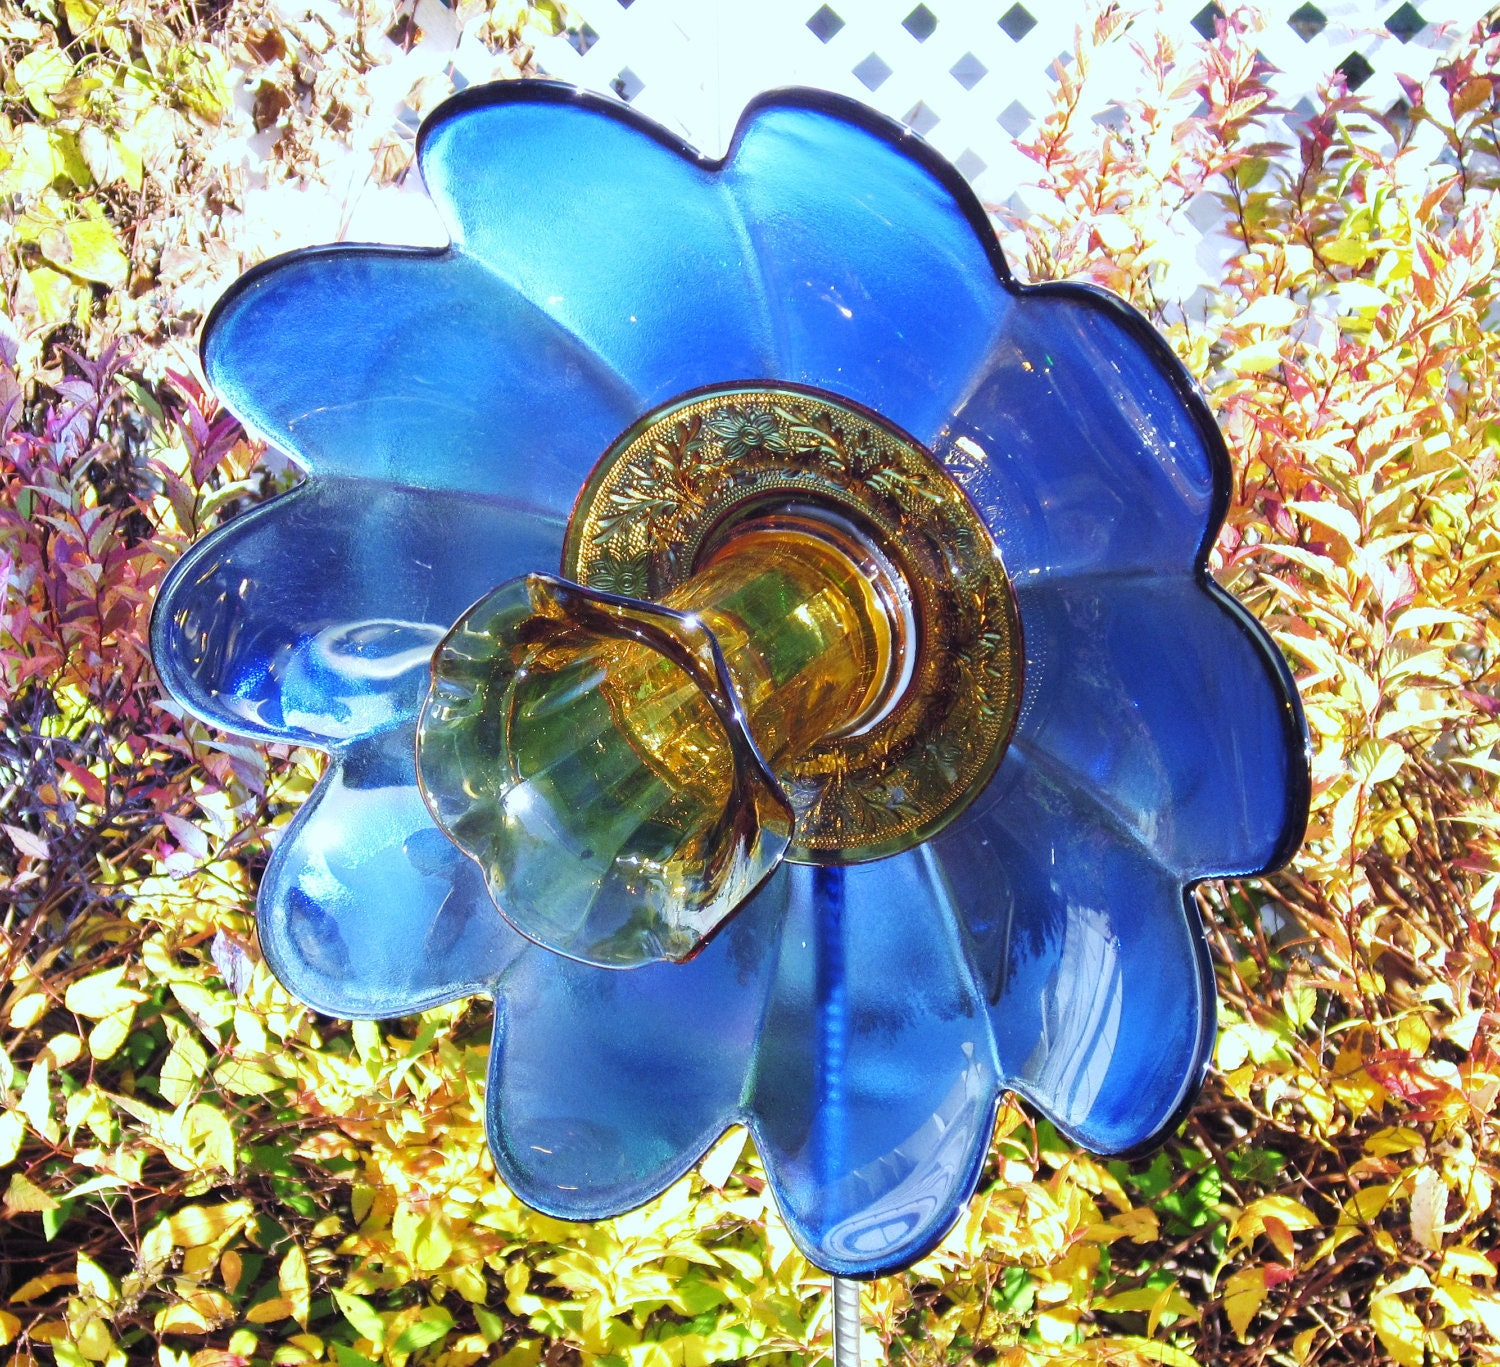 Garden Art Flower Outdoor Decor Recycled Repurposed Glass